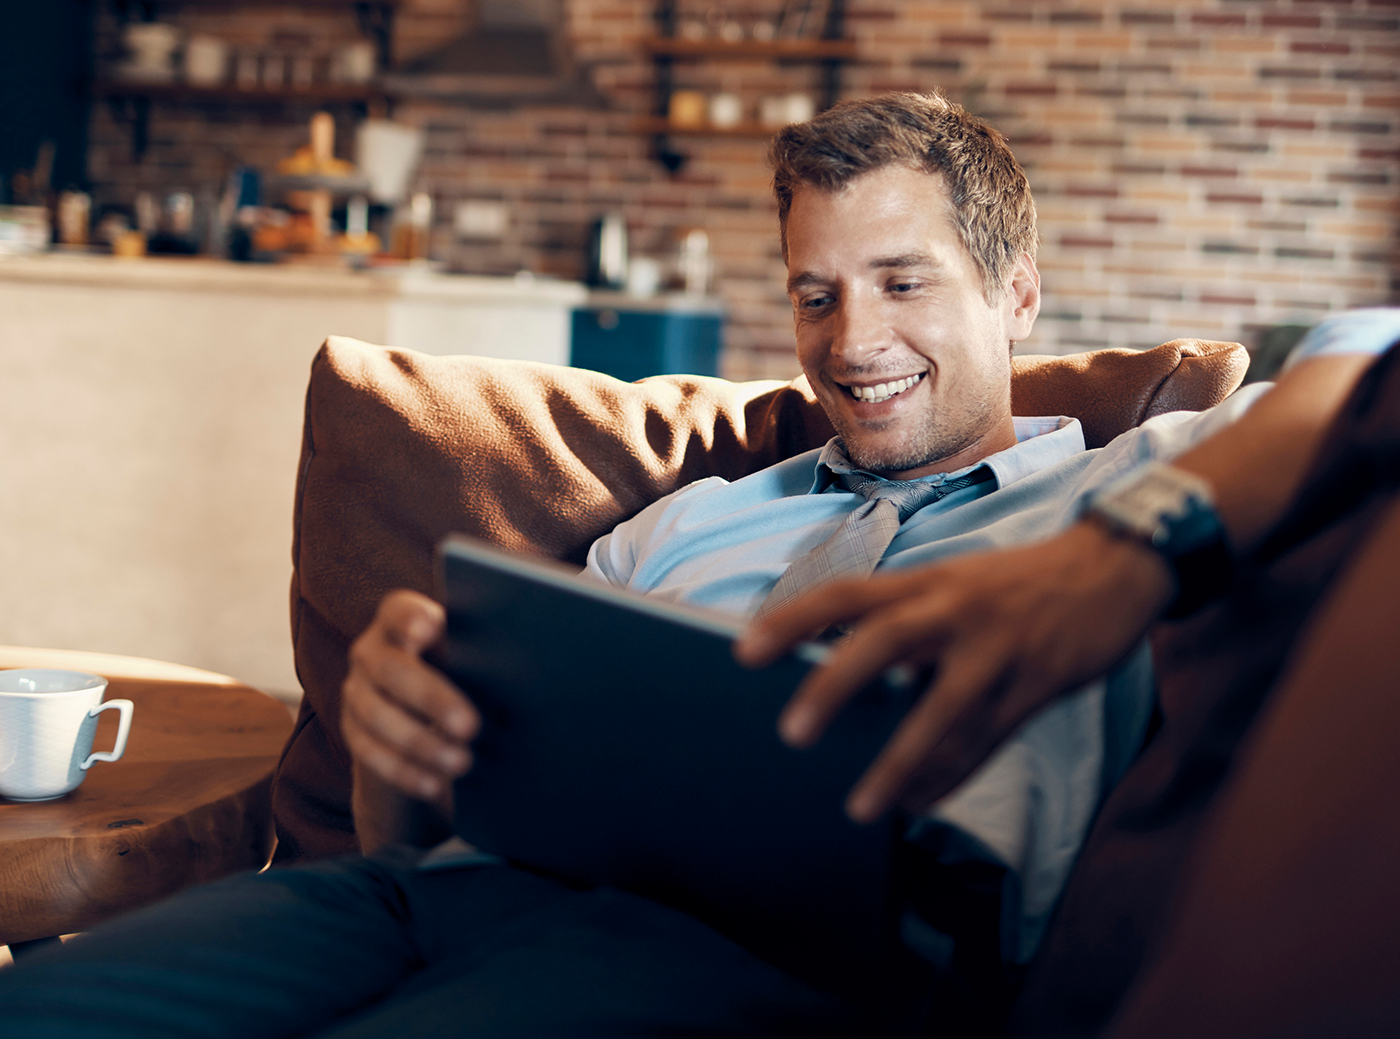 man on couch watching tablet